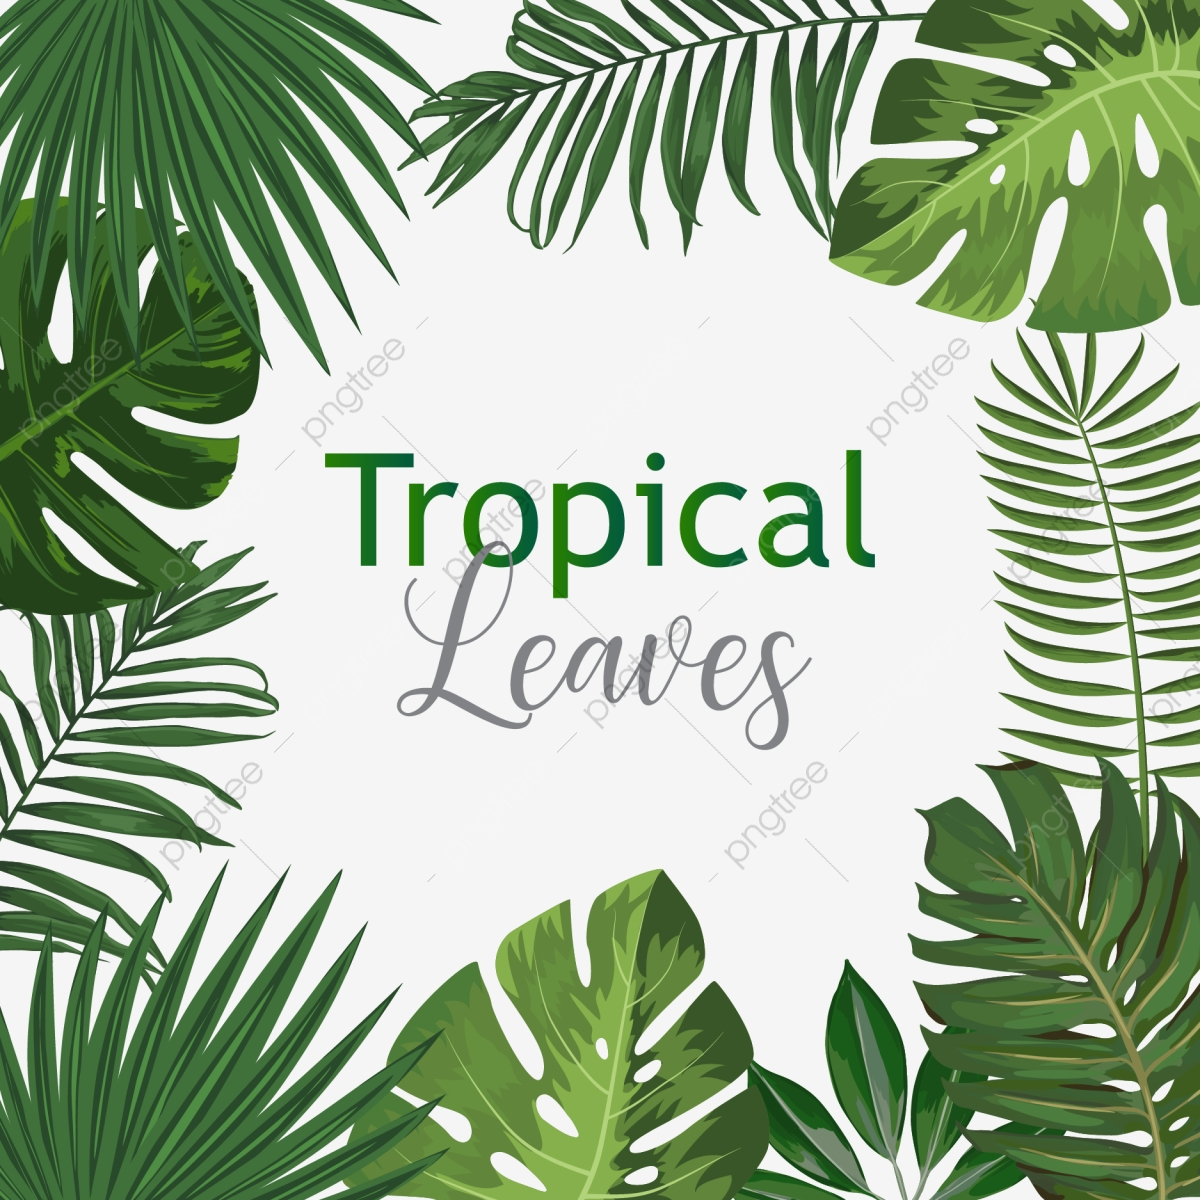 Tropical Leaves Png Vector Psd And Clipart With Transparent Background For Free Download Pngtree Find the perfect tropical leaf pattern stock illustrations from getty images. https pngtree com freepng creative exotic botanical tropical leaves with text vector 4236231 html